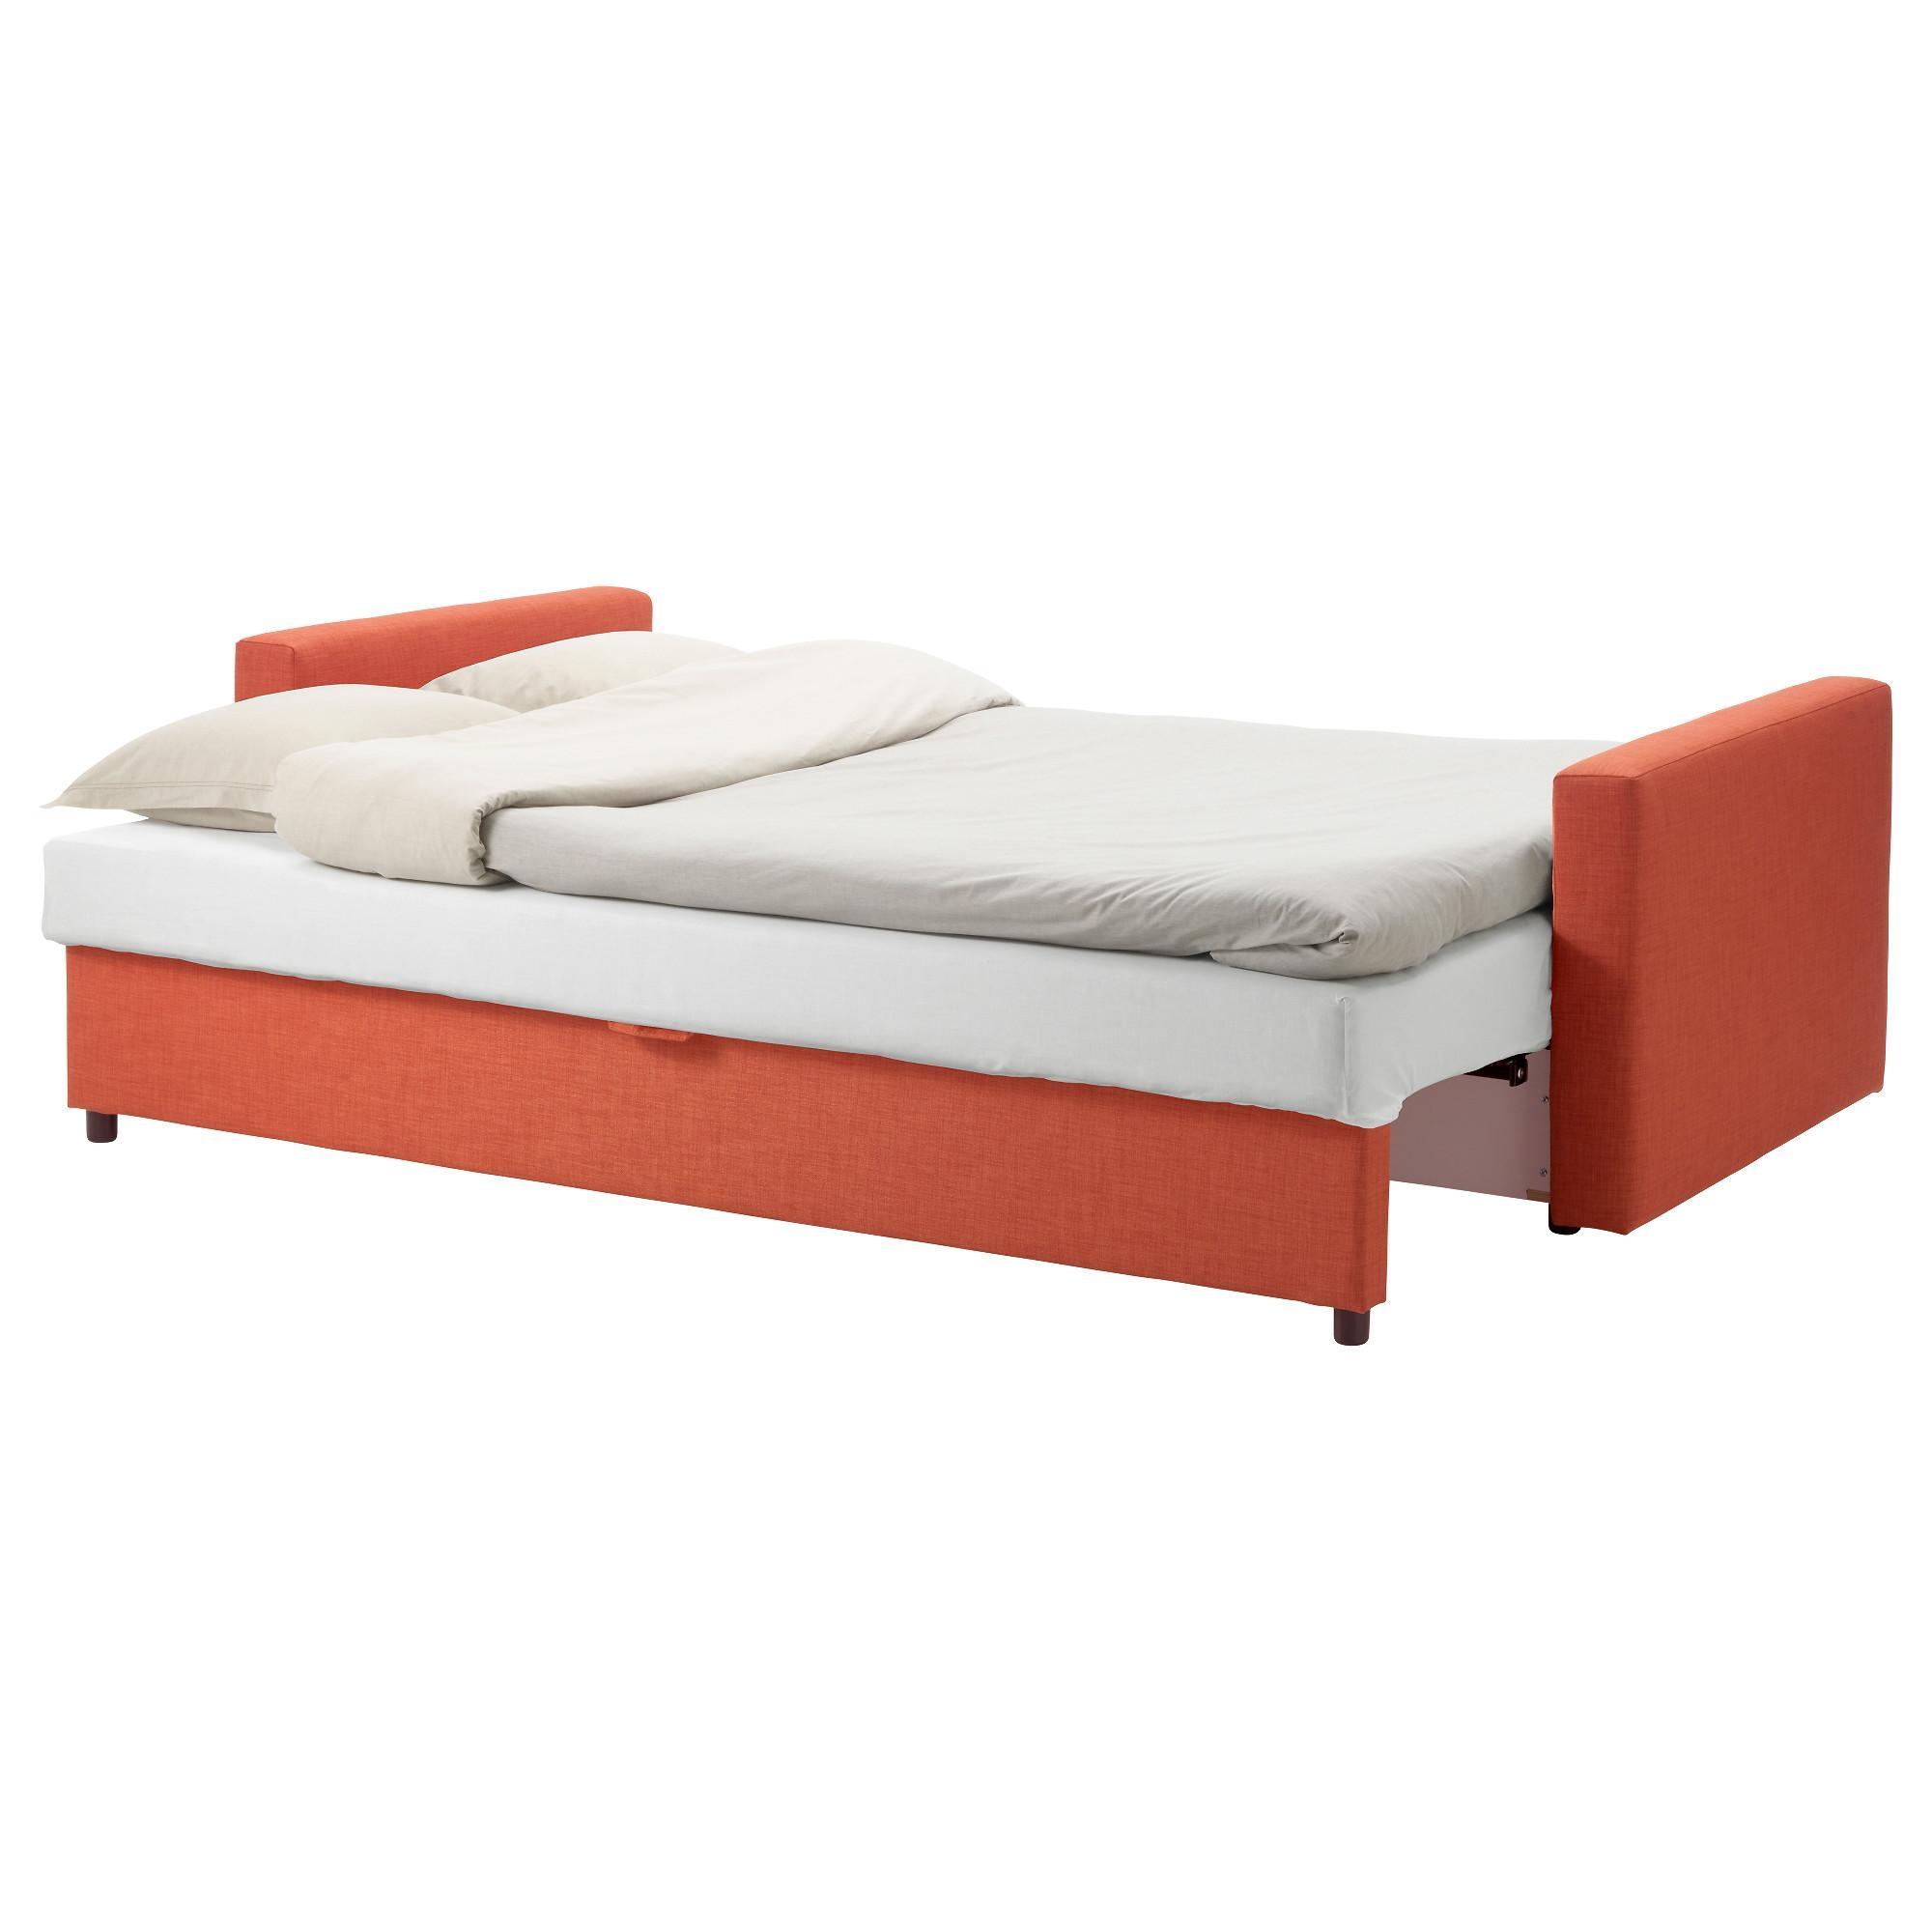 Friheten Three Seat Sofa Bed Skiftebo Dark Orange – Ikea Inside Orange Ikea Sofas (Image 7 of 20)